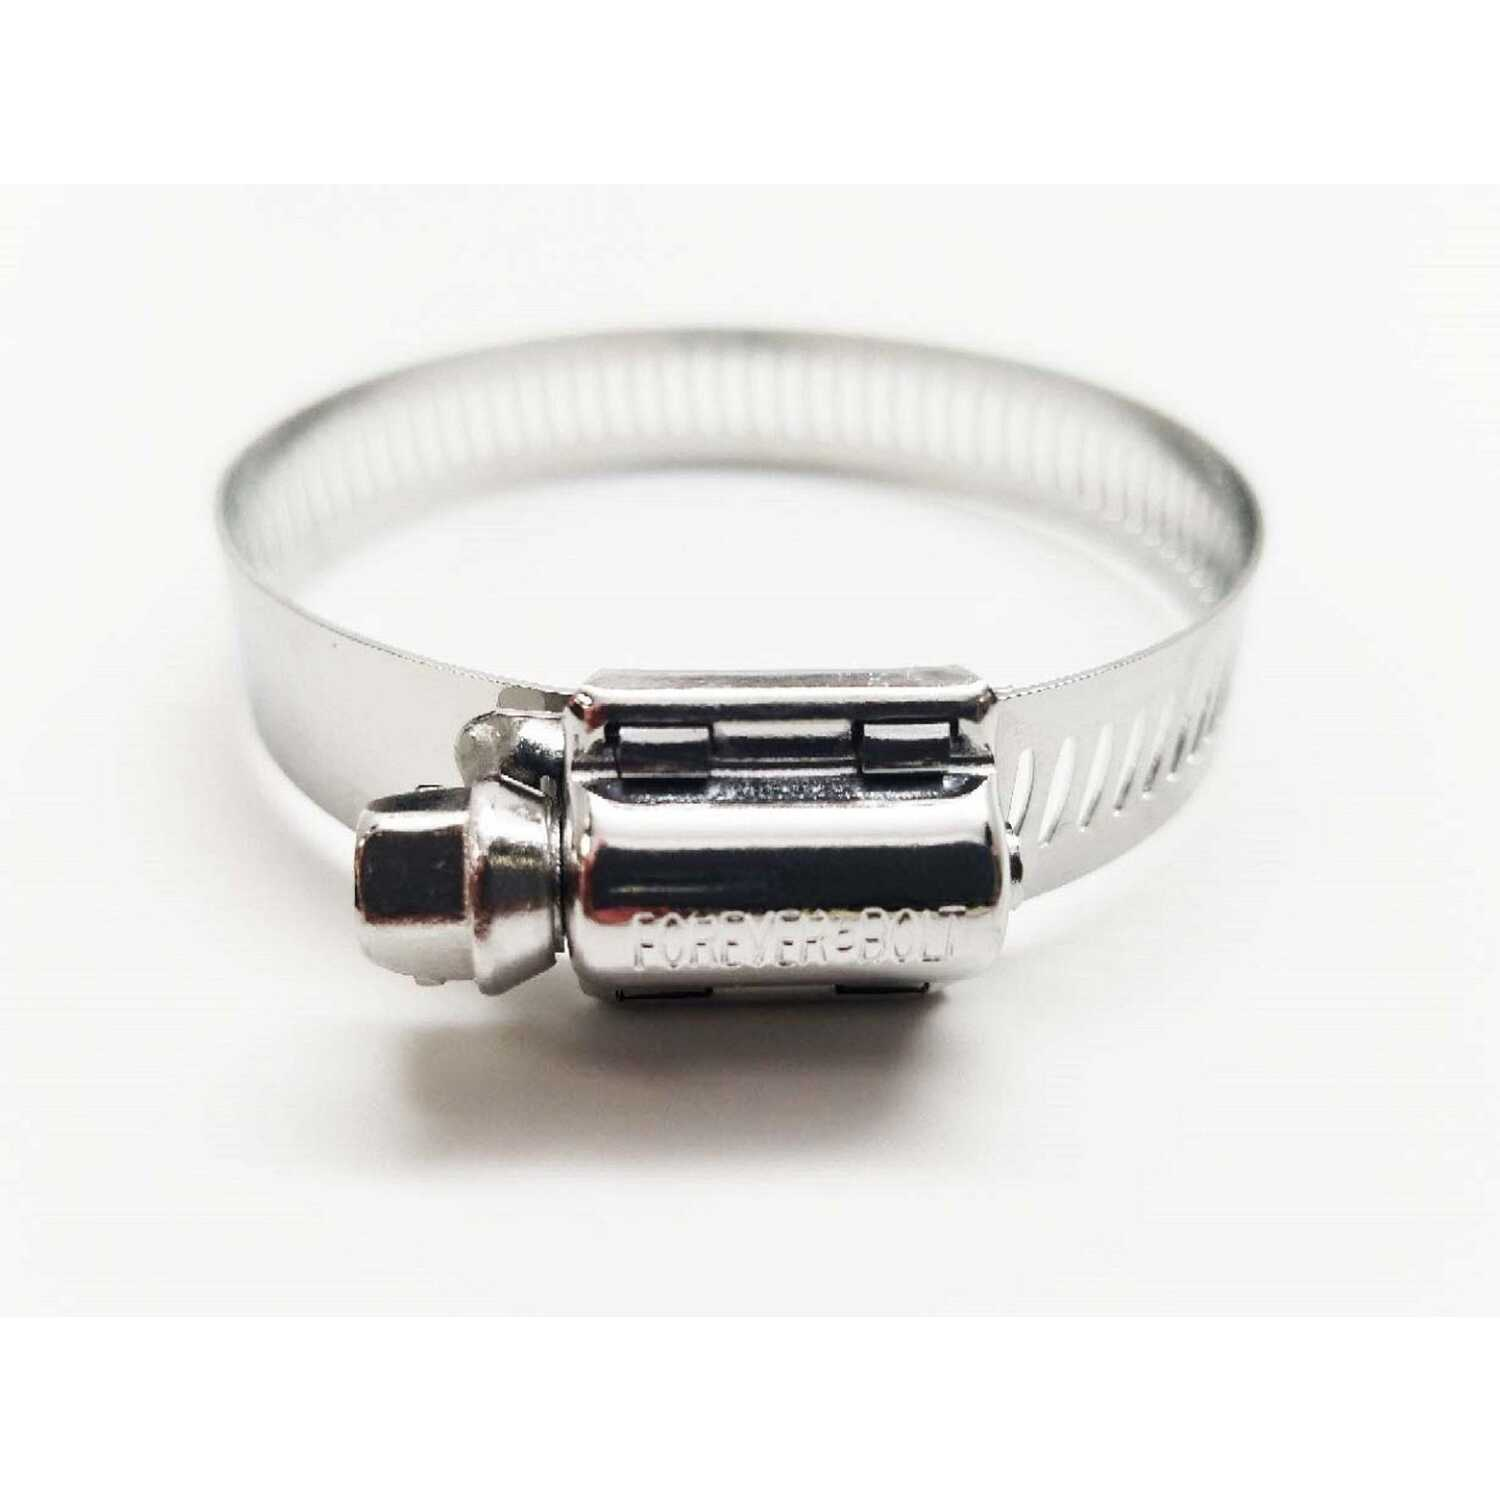 FOREVER BOLT  1-5/16 in. to 2-1/4 in. Stainless Steel  Band  Hose Clamp